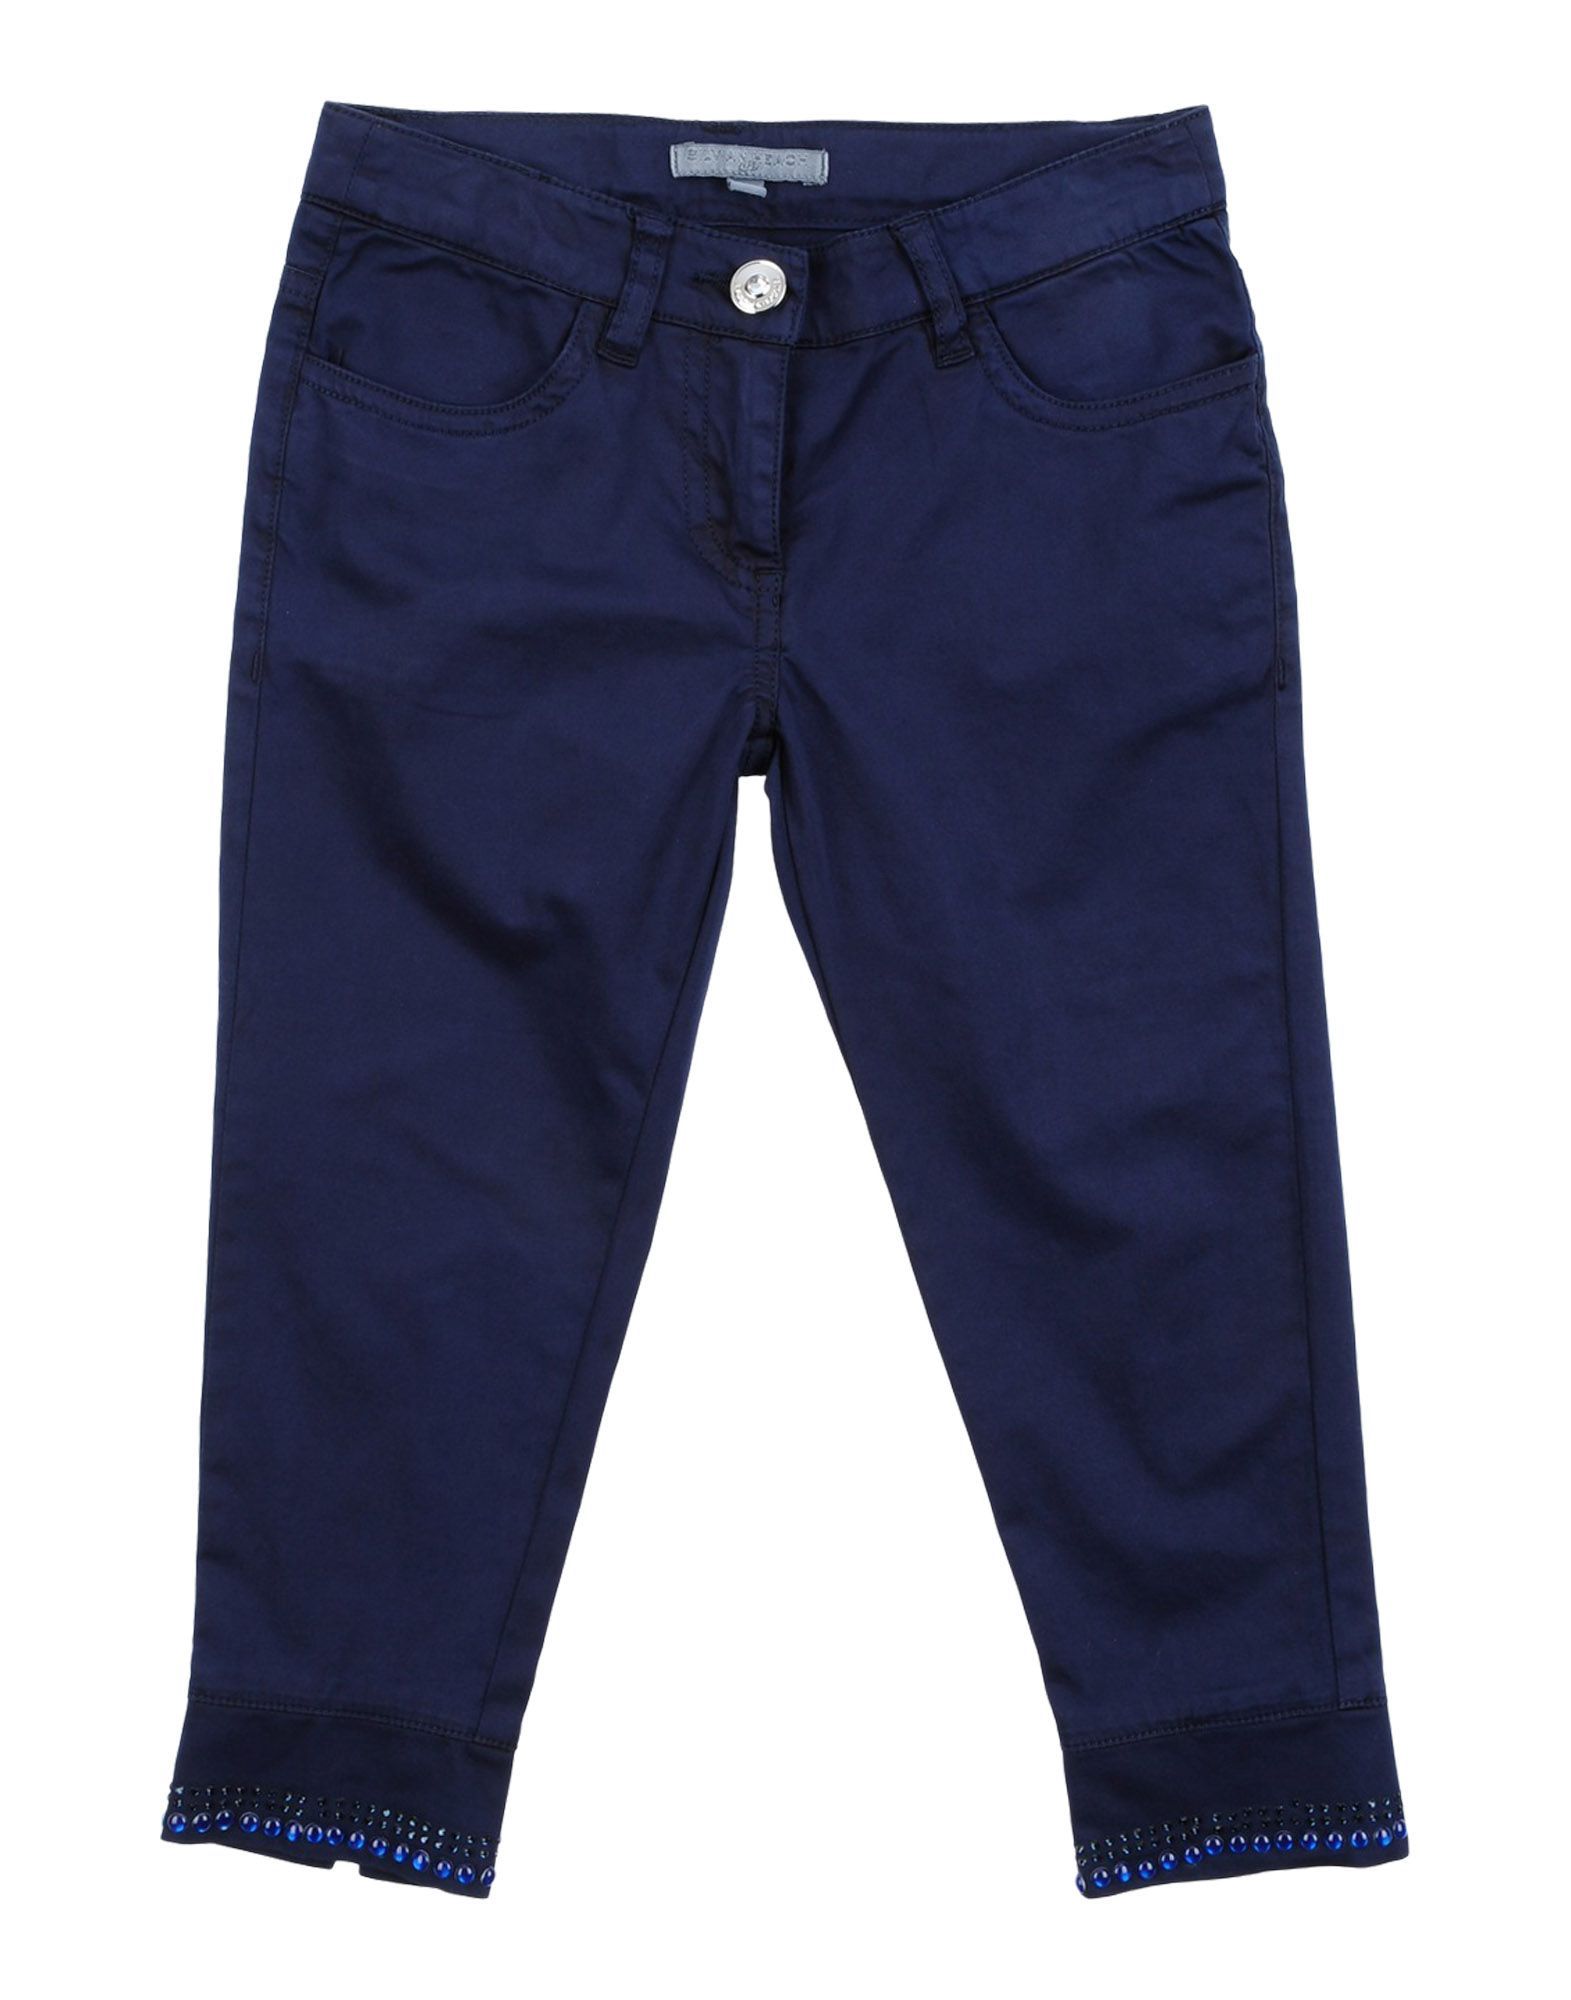 Silvian Heach Kids Casual Pants Shop At Ebates